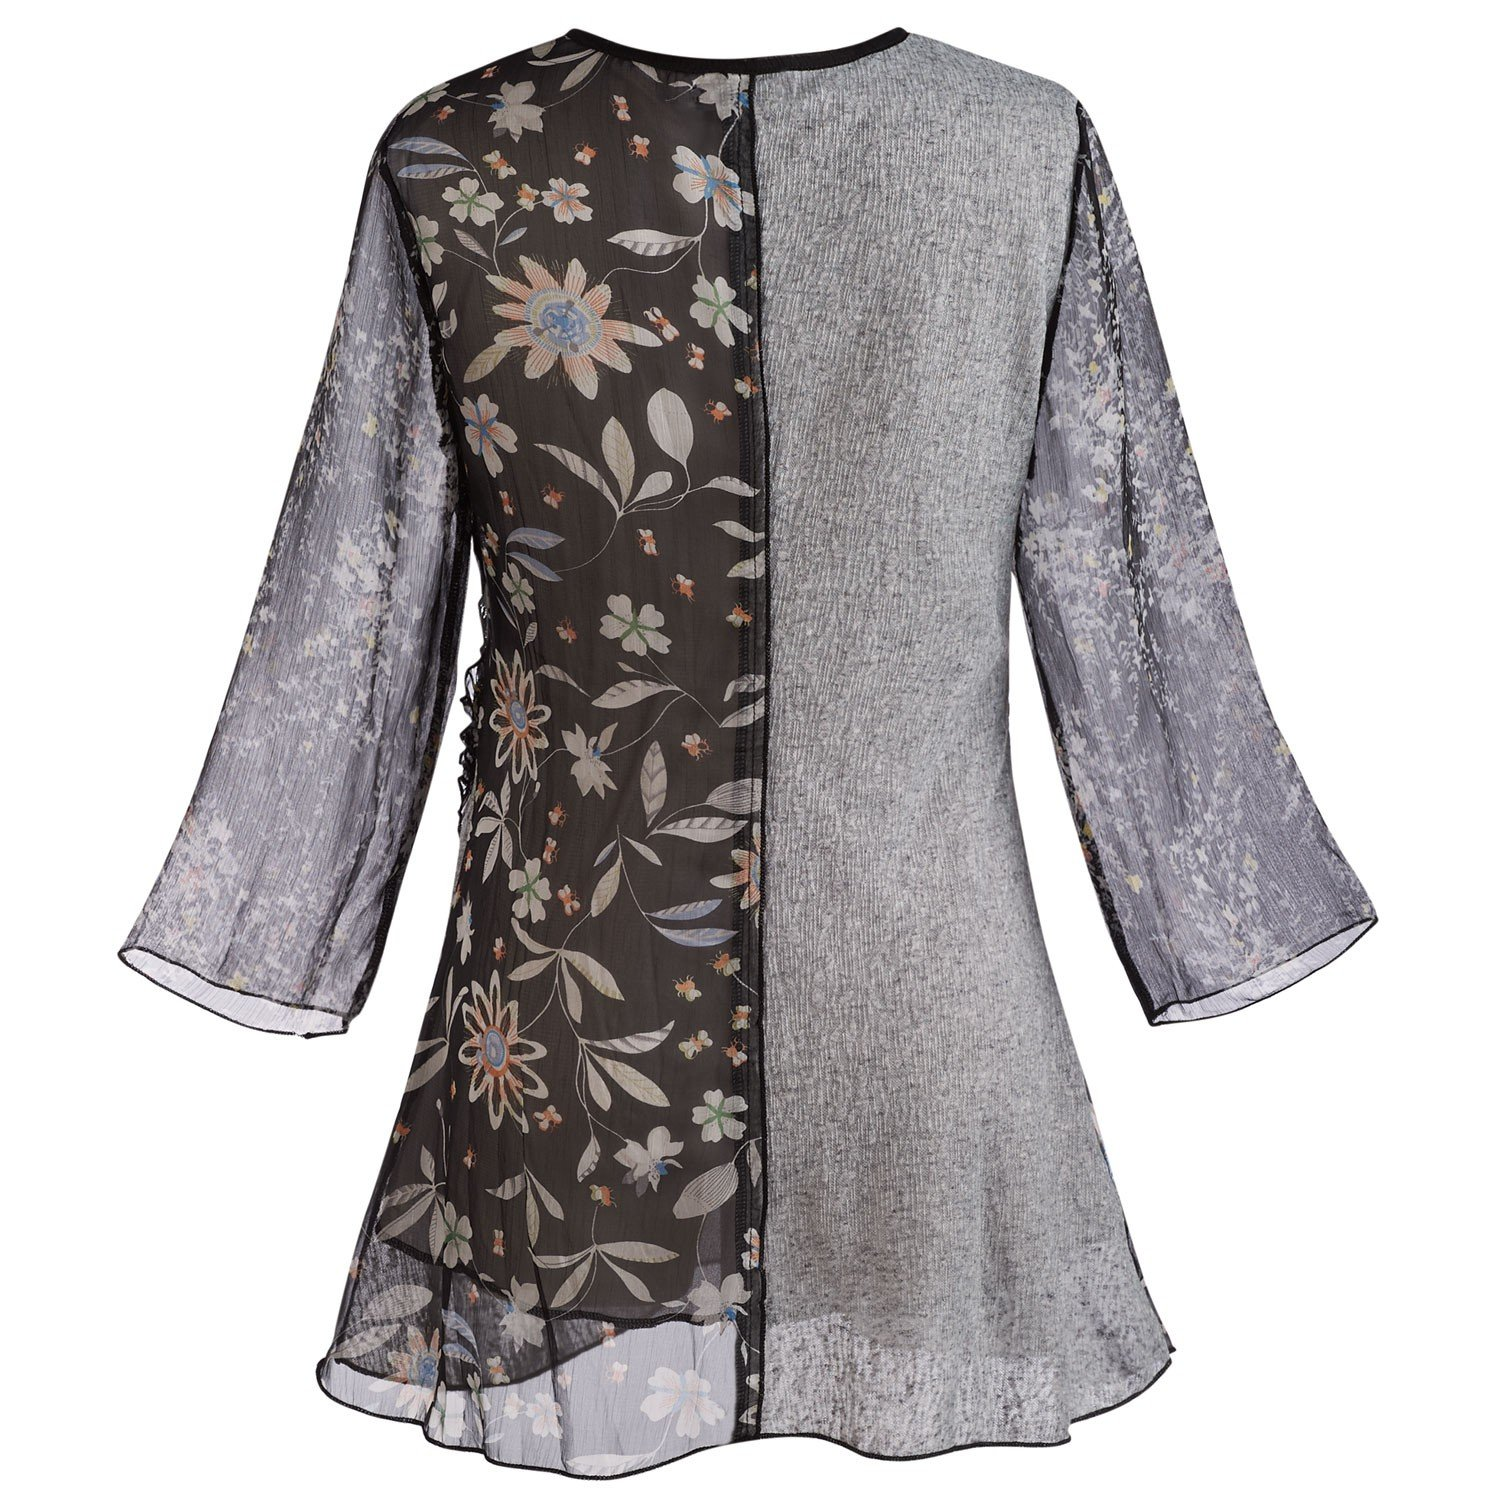 9460db75b89 Adore Women's Patchwork Tunic Top -Mixed Lace & Floral Patterns 3/4 Bell  Sleeves at Amazon Women's Clothing store: